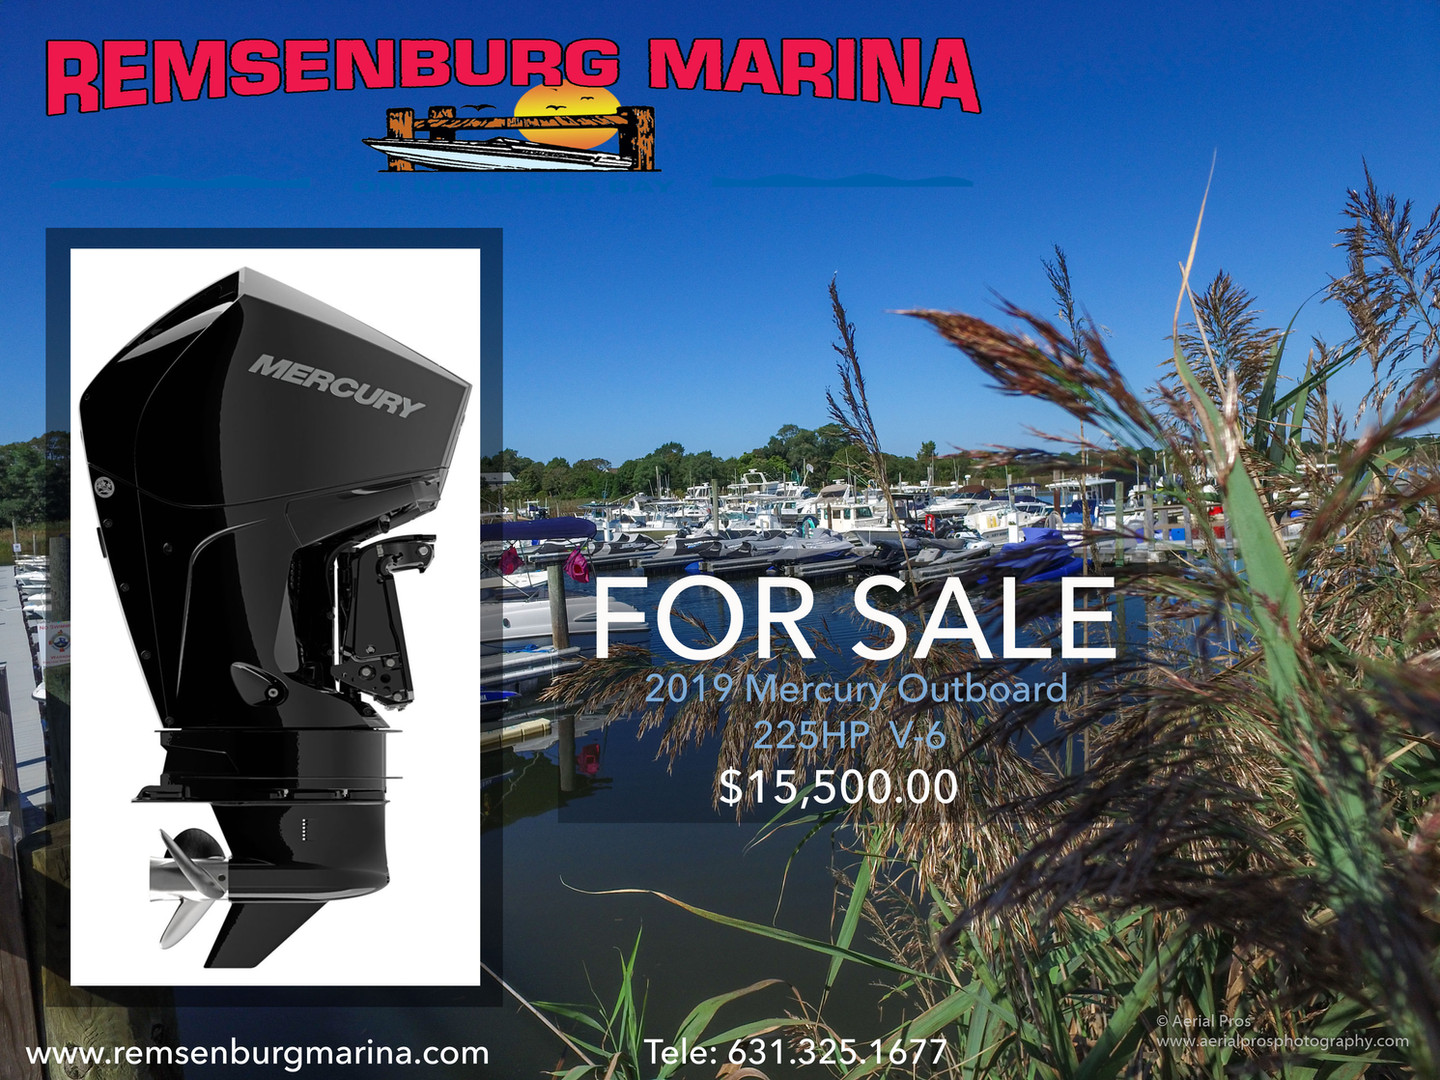 2019 Mercury Outboard For Sale-02282020.